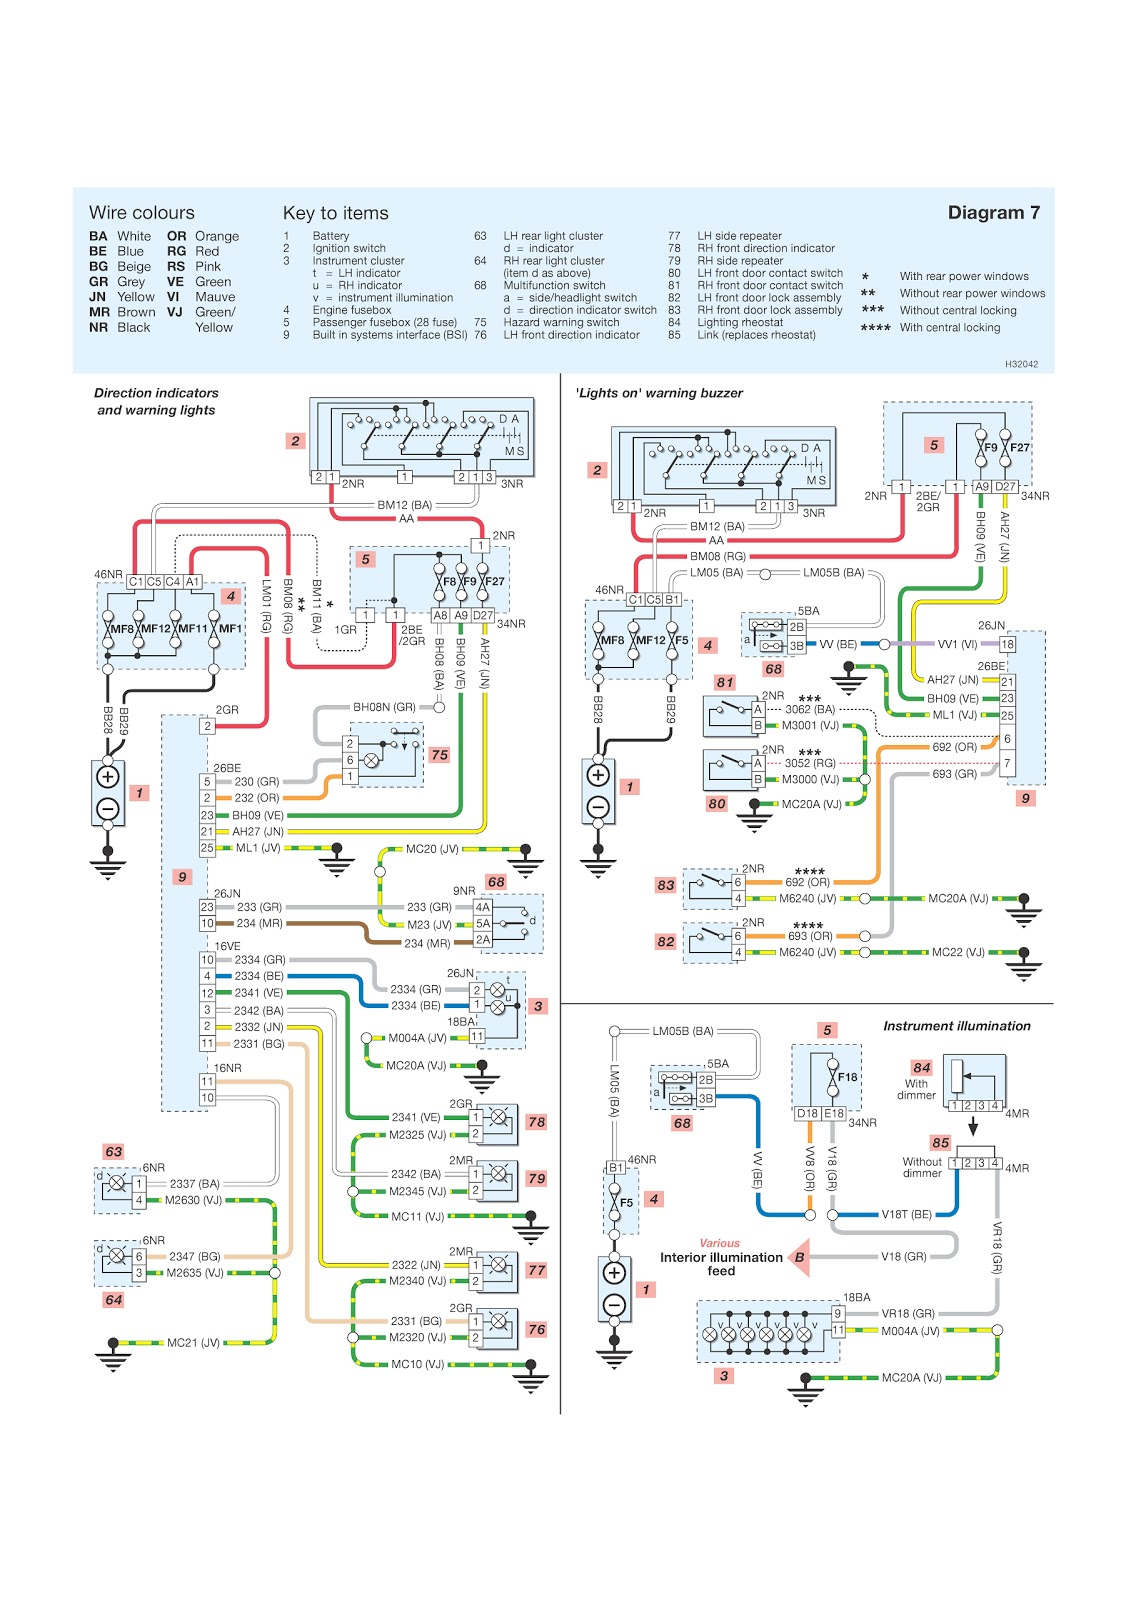 peugeot 206 wiring diagram 91 jeep wrangler schematic interior lighting continued